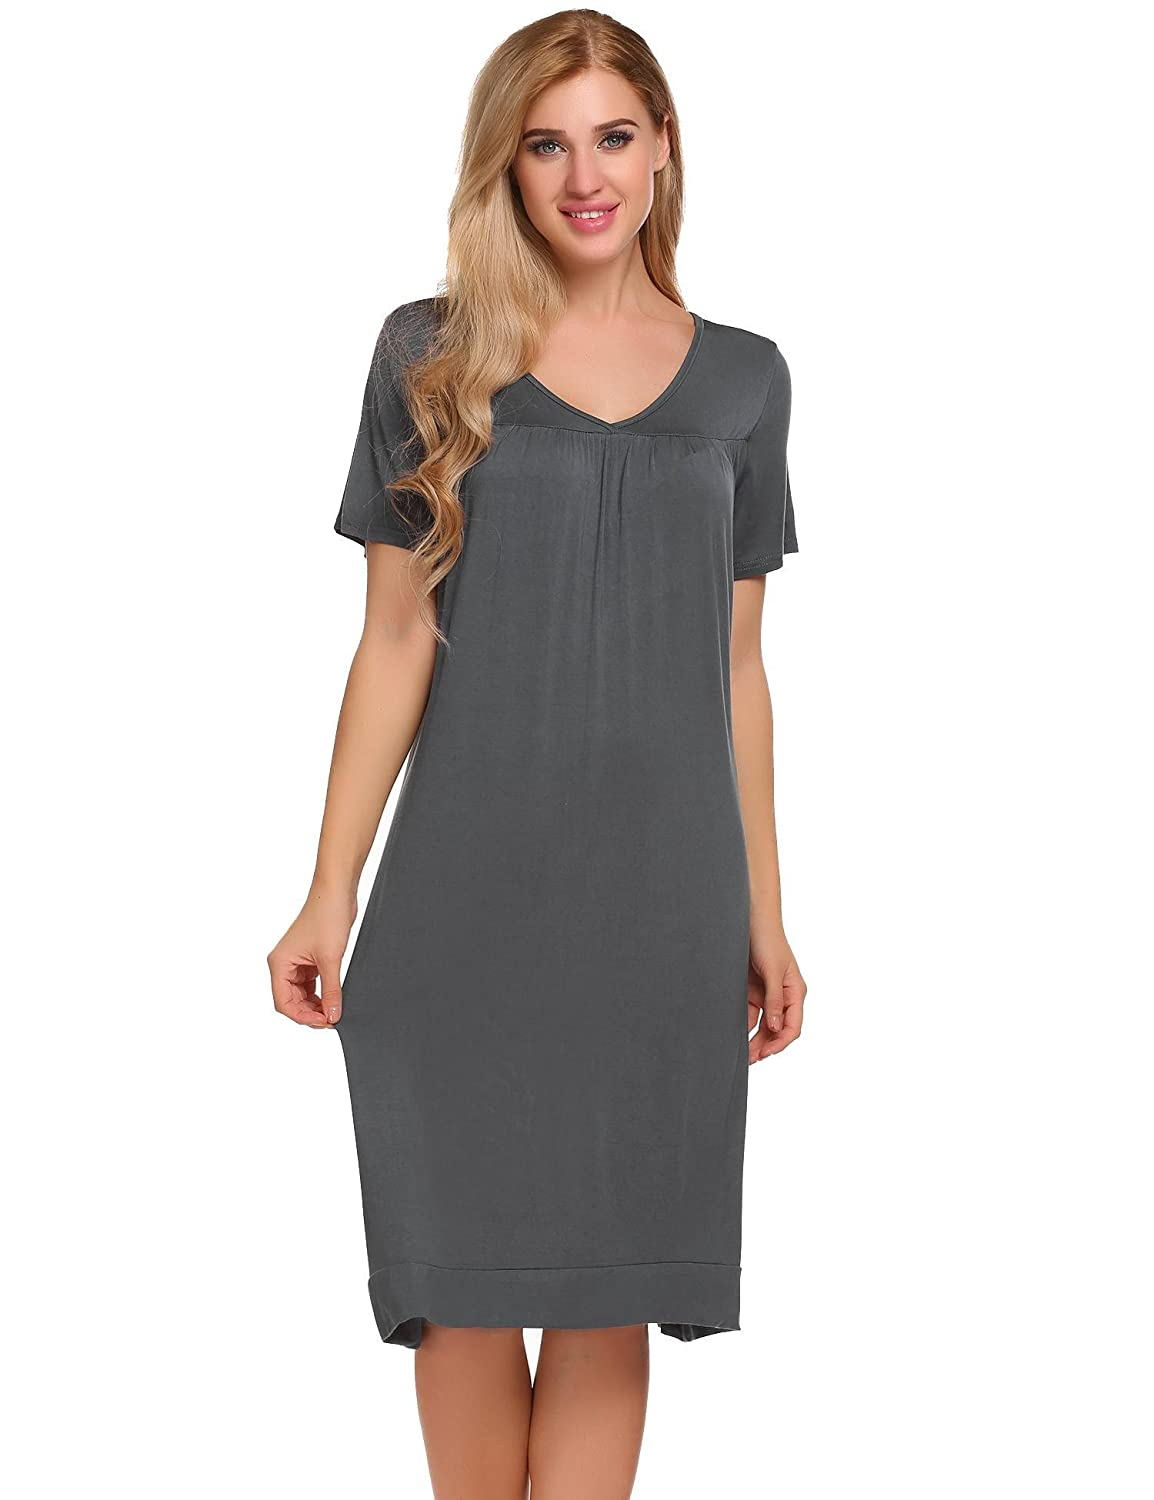 Grey L'amore Short Sleeve Womens Nightgown Cotton V Neck Midi Sleepwears for Women SXXL